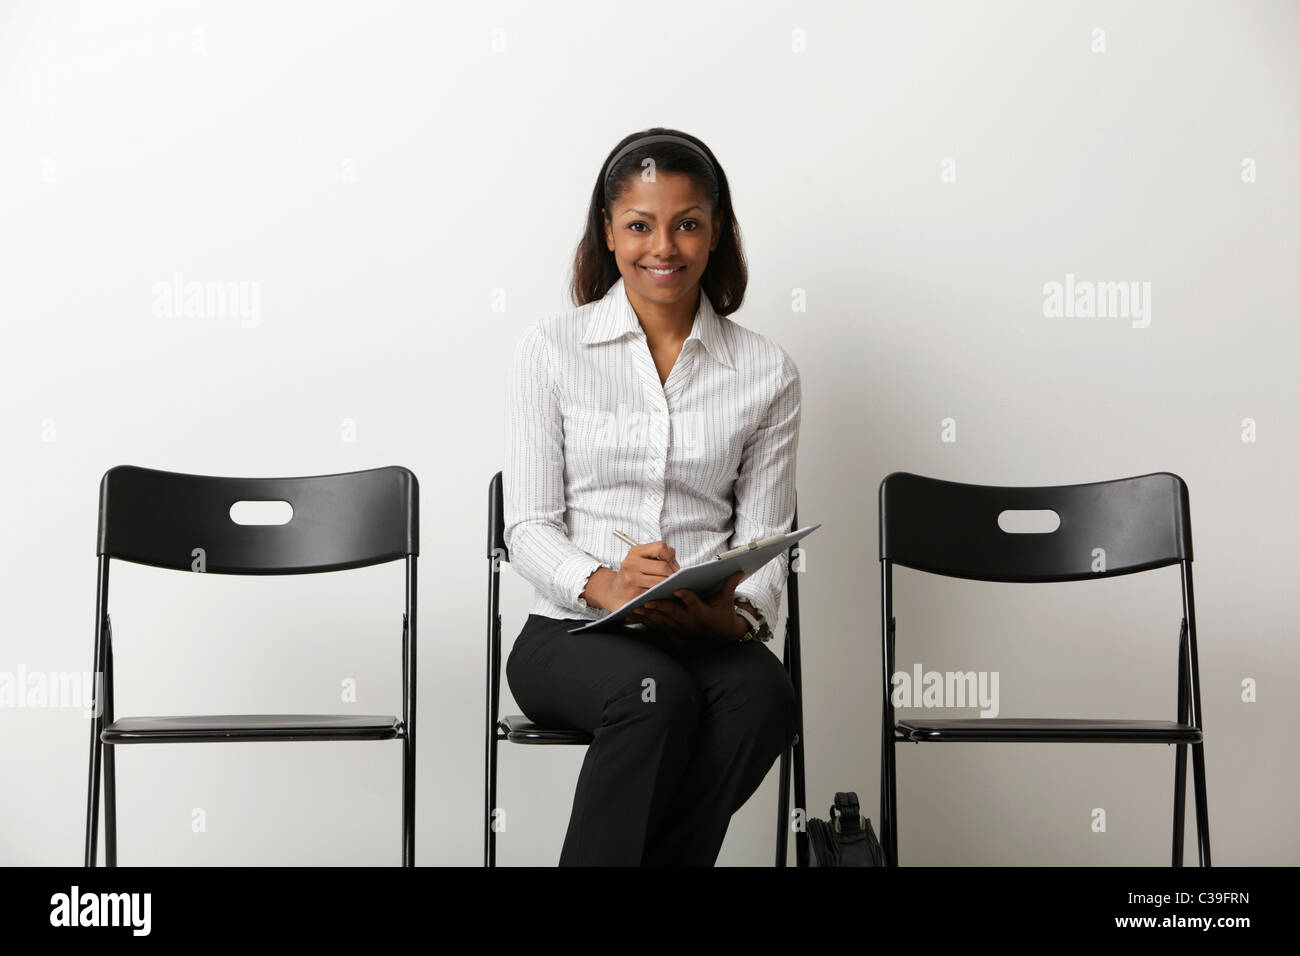 Young Indian woman fills out form and waits in waiting room - Stock Image